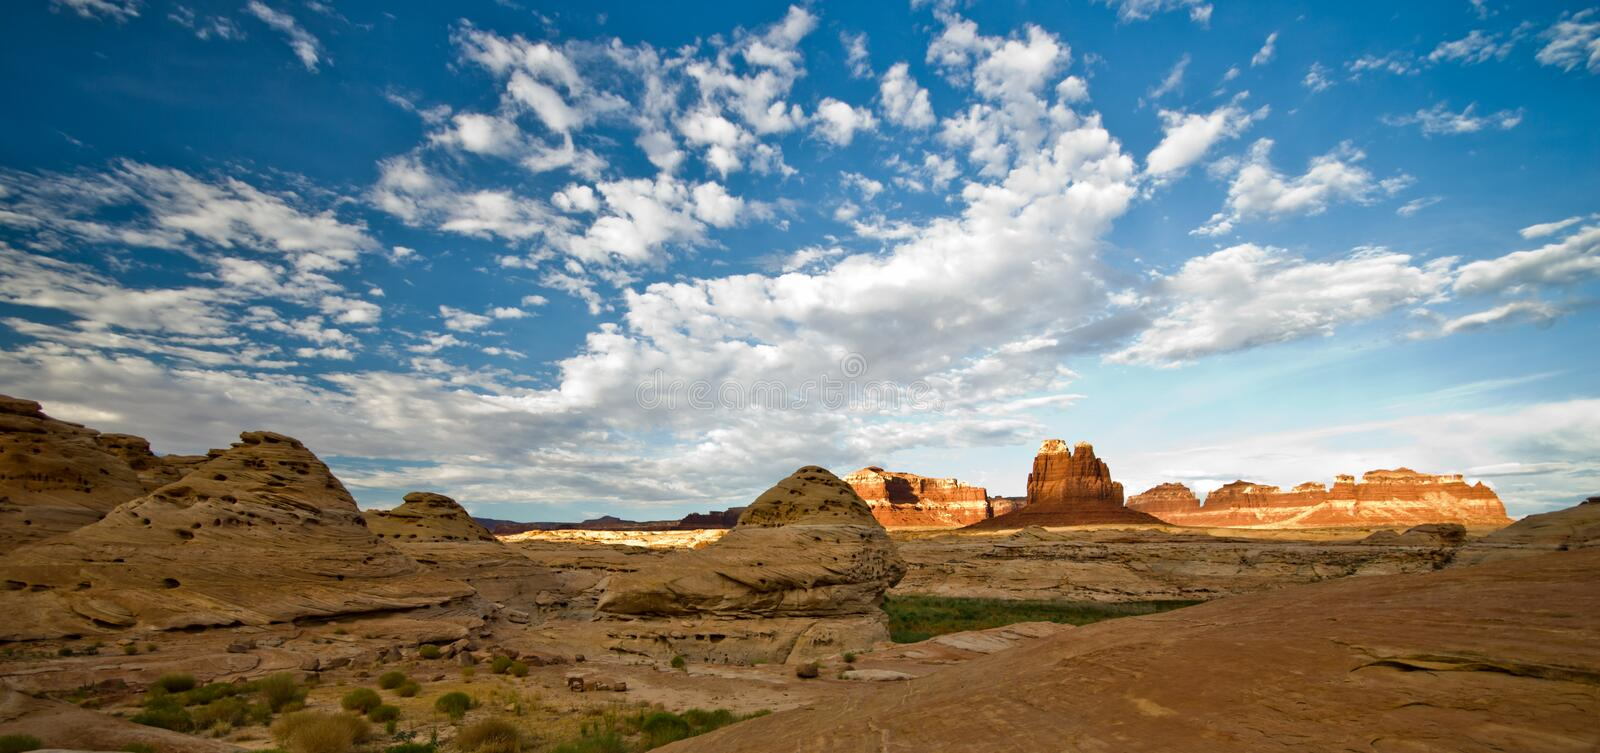 Roadside scenery in Utah at the northern end of the Glen Canyon. Recreation Area stock photography